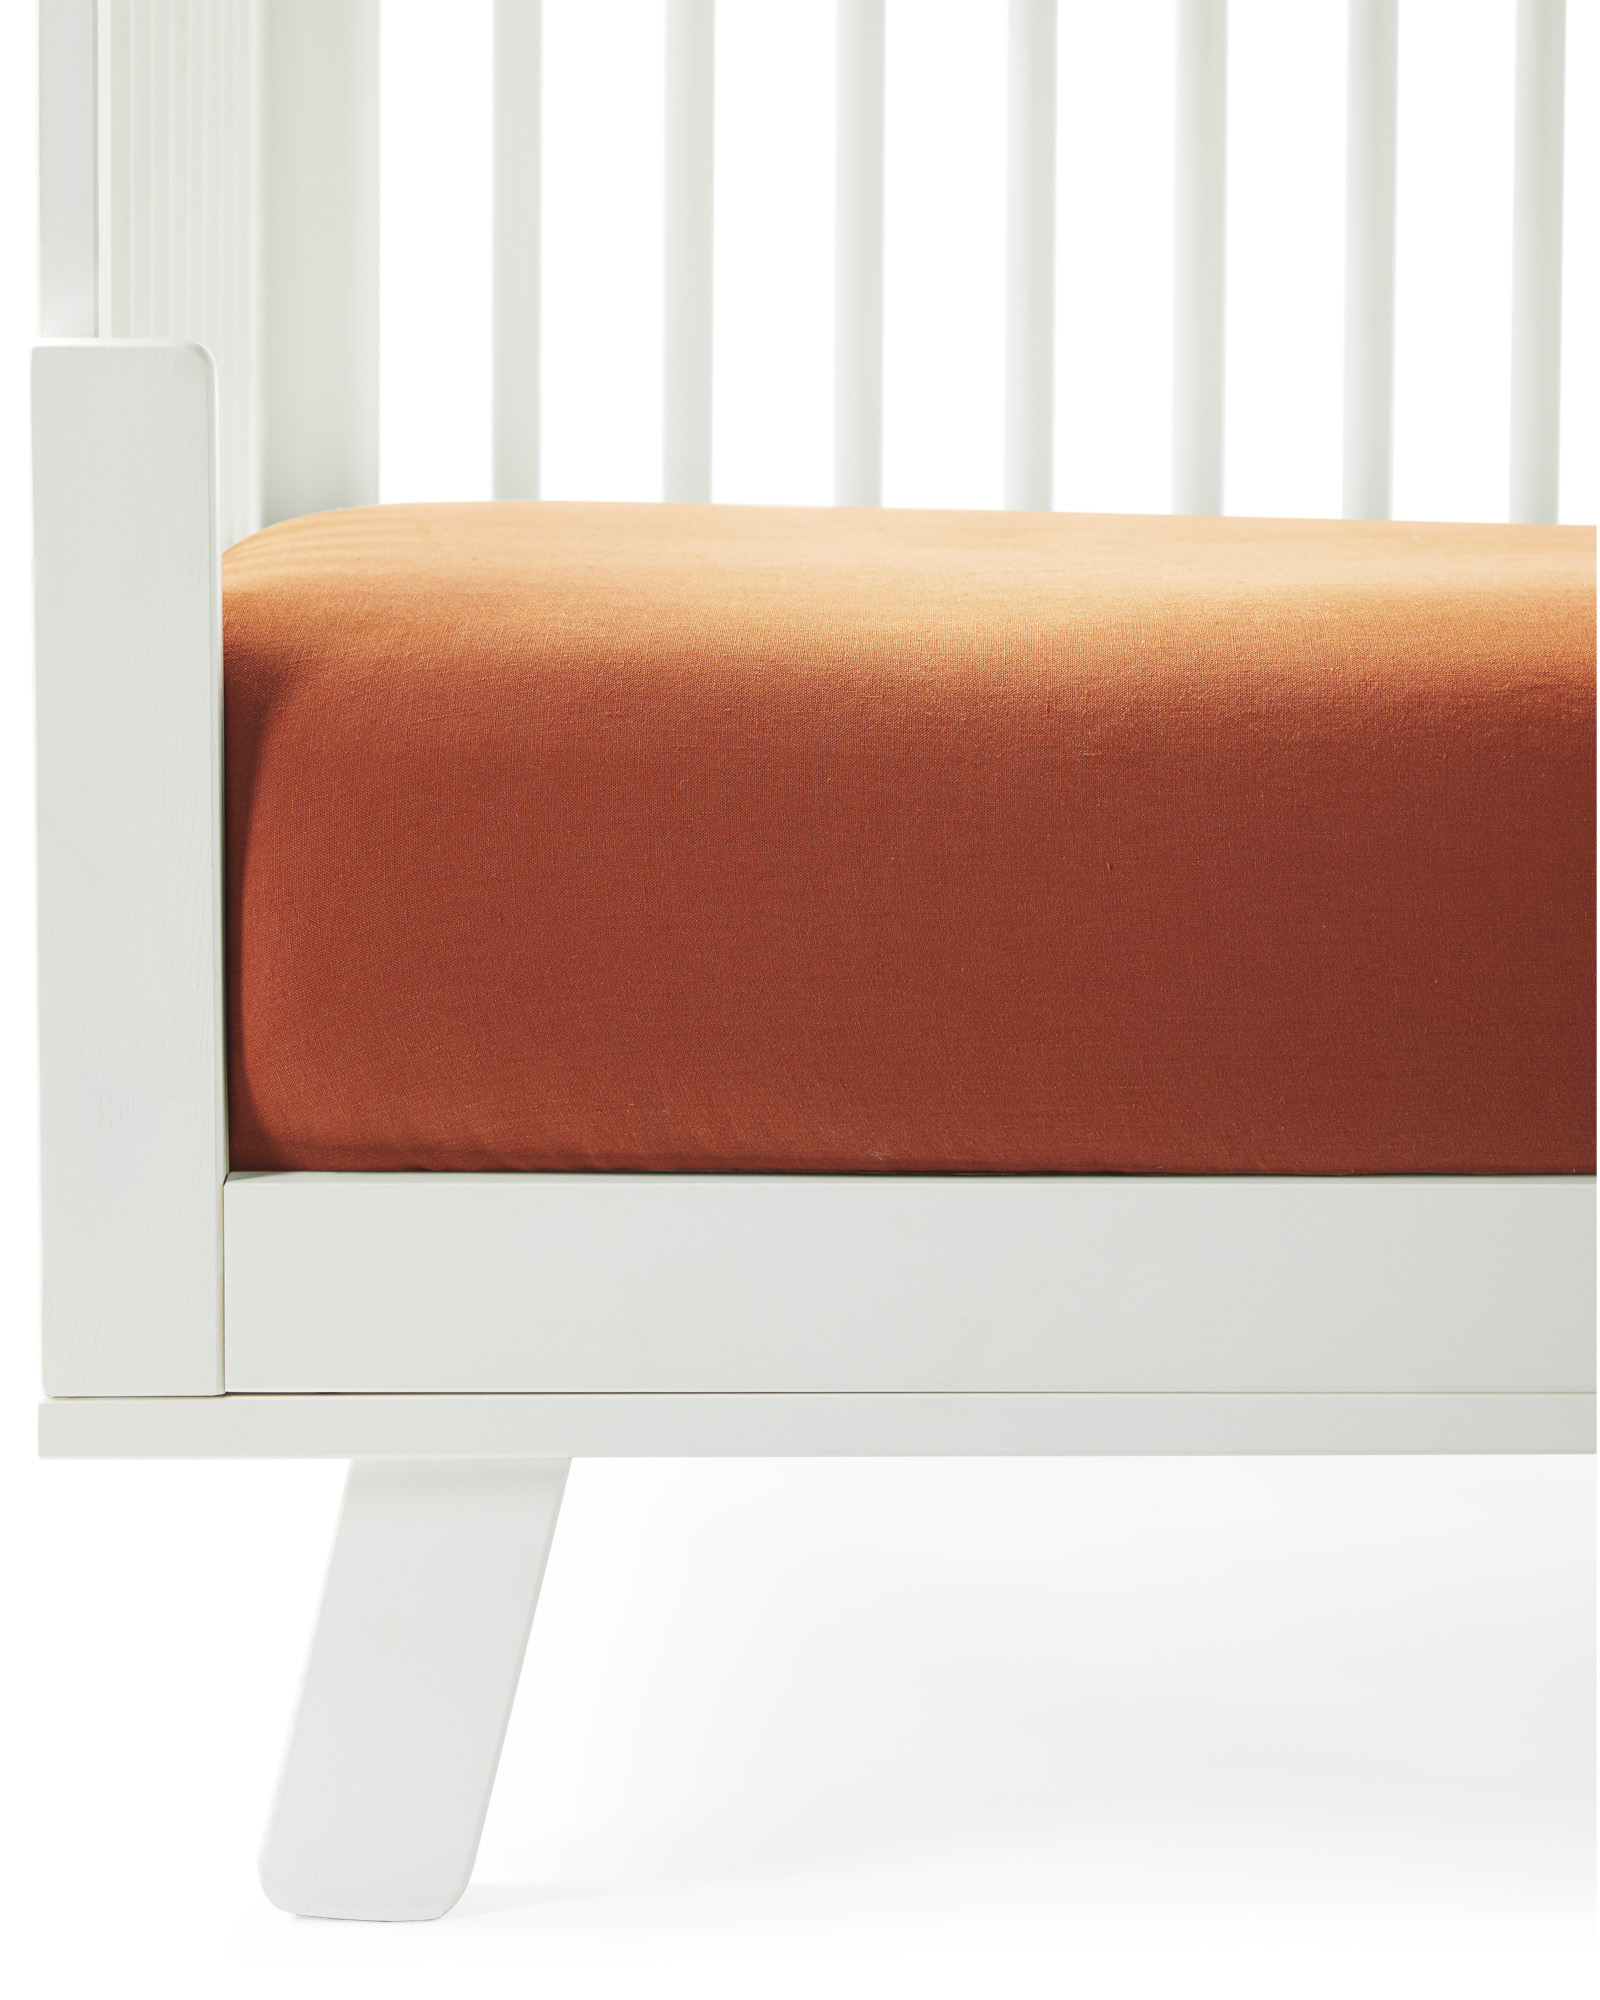 Positano Linen Crib Sheet, Terracotta